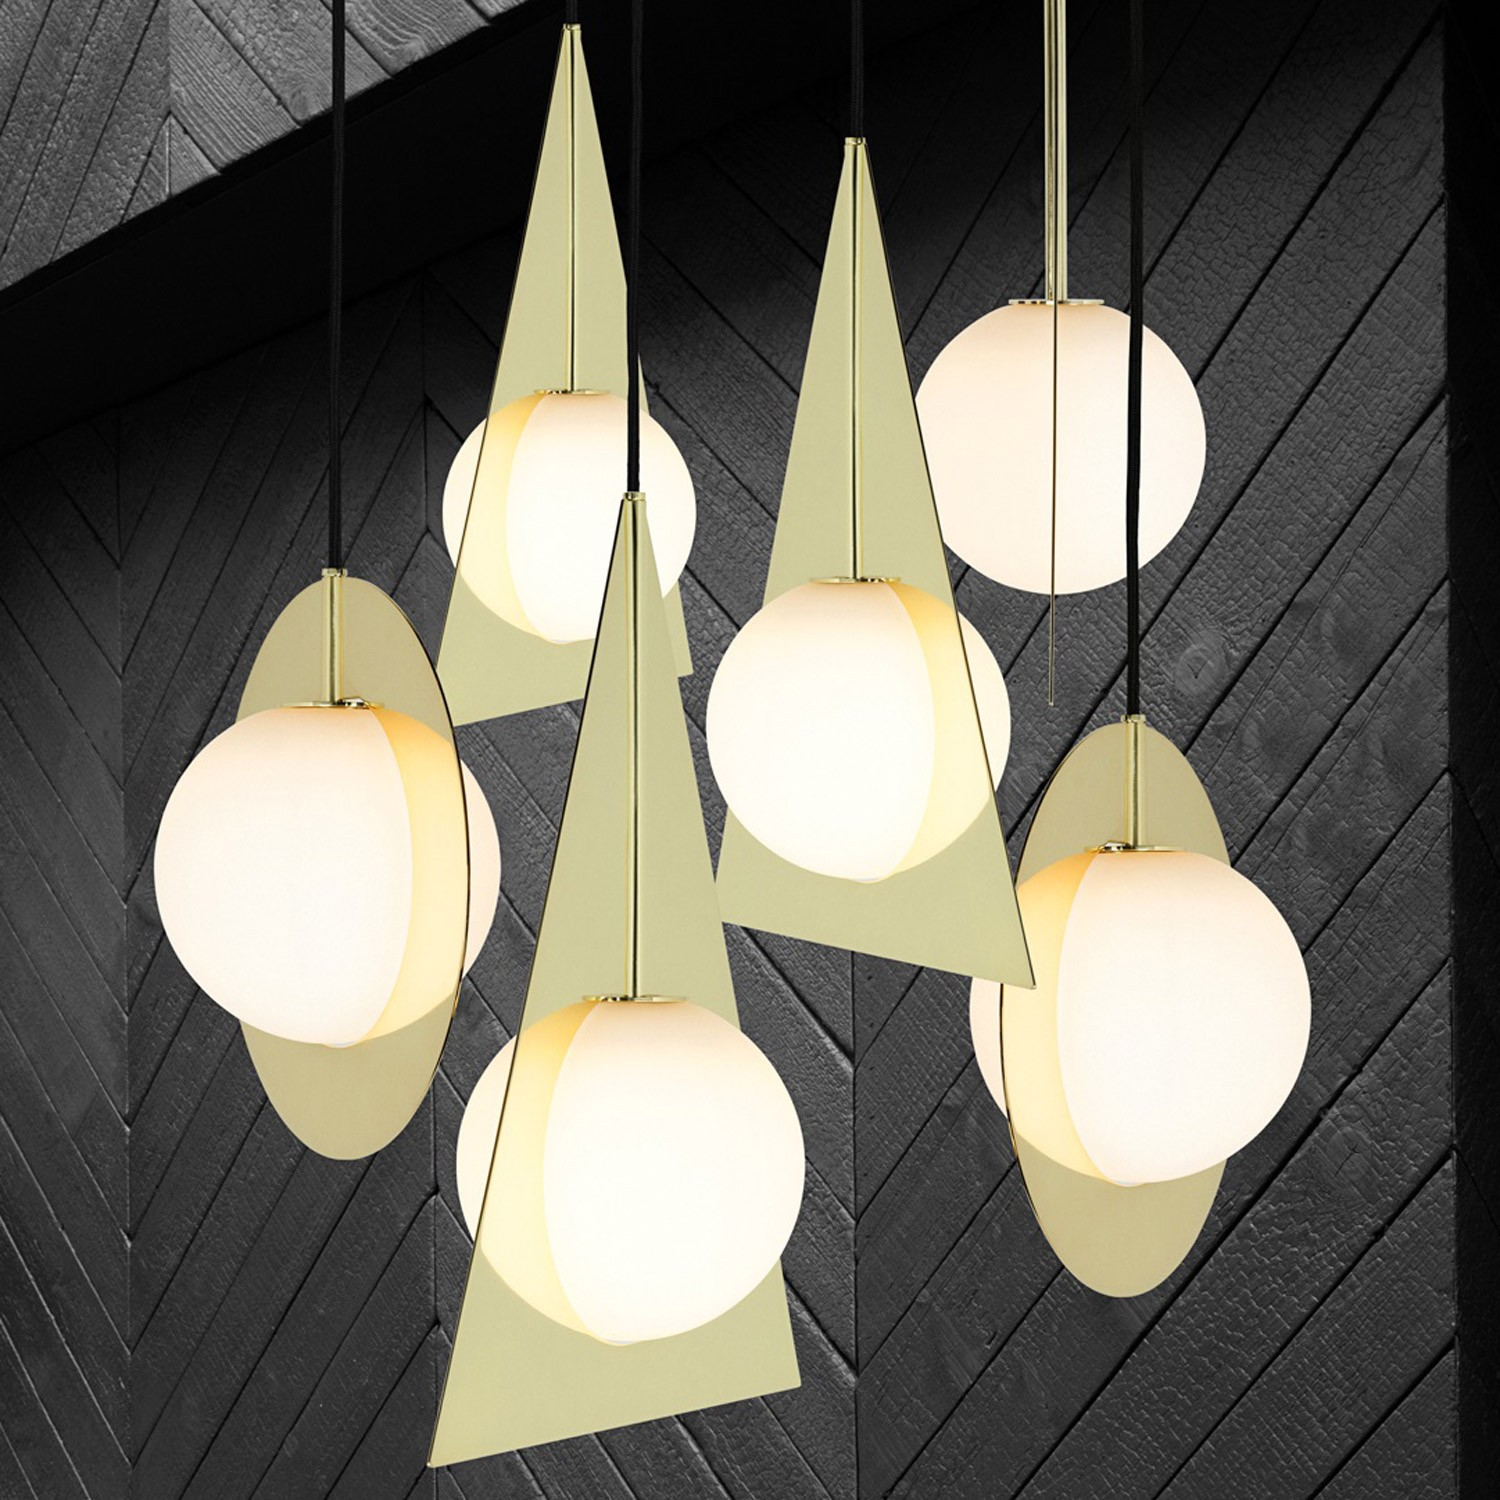 7 Modern Gold Pendants to Light up Your Life